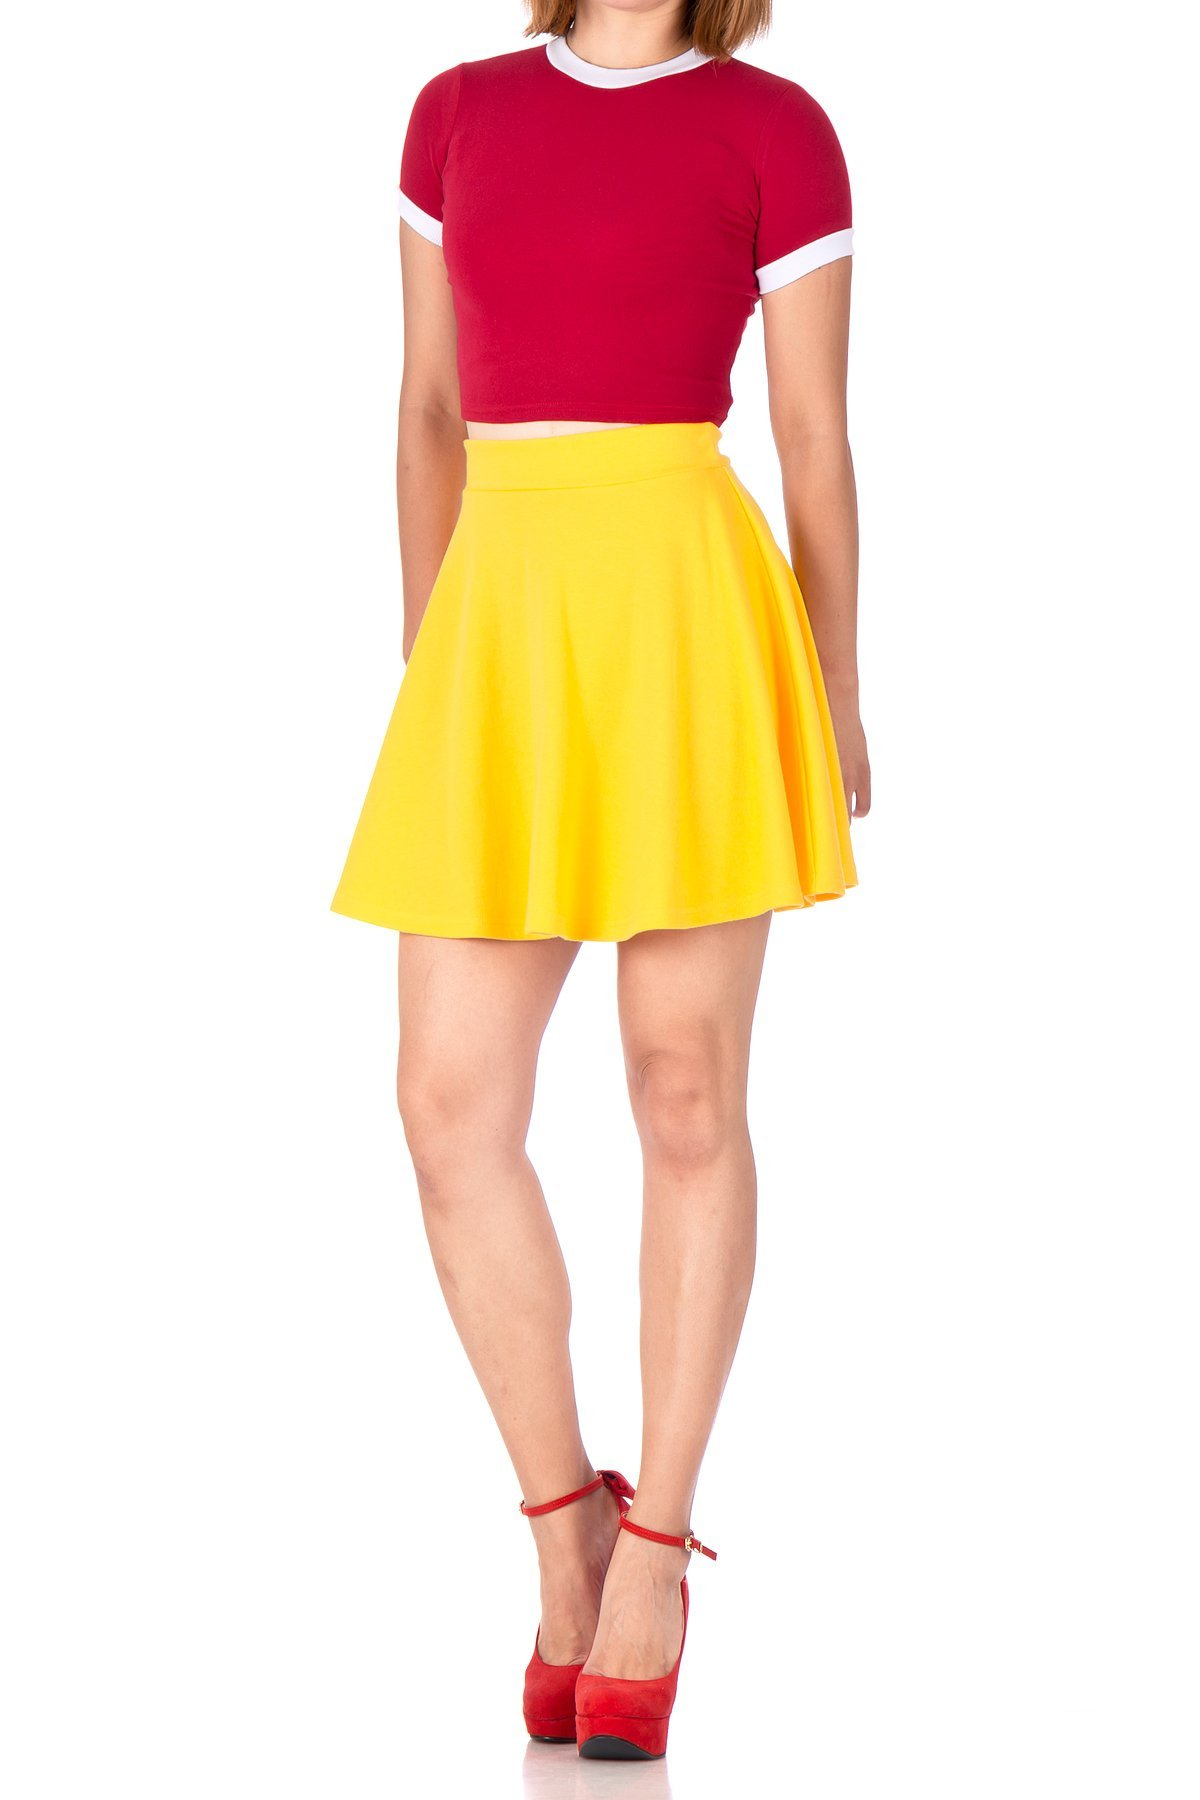 6466249916 Basic Solid Stretchy Cotton High Waist A line Flared Skater Mini Skirt  Yellow 03 1